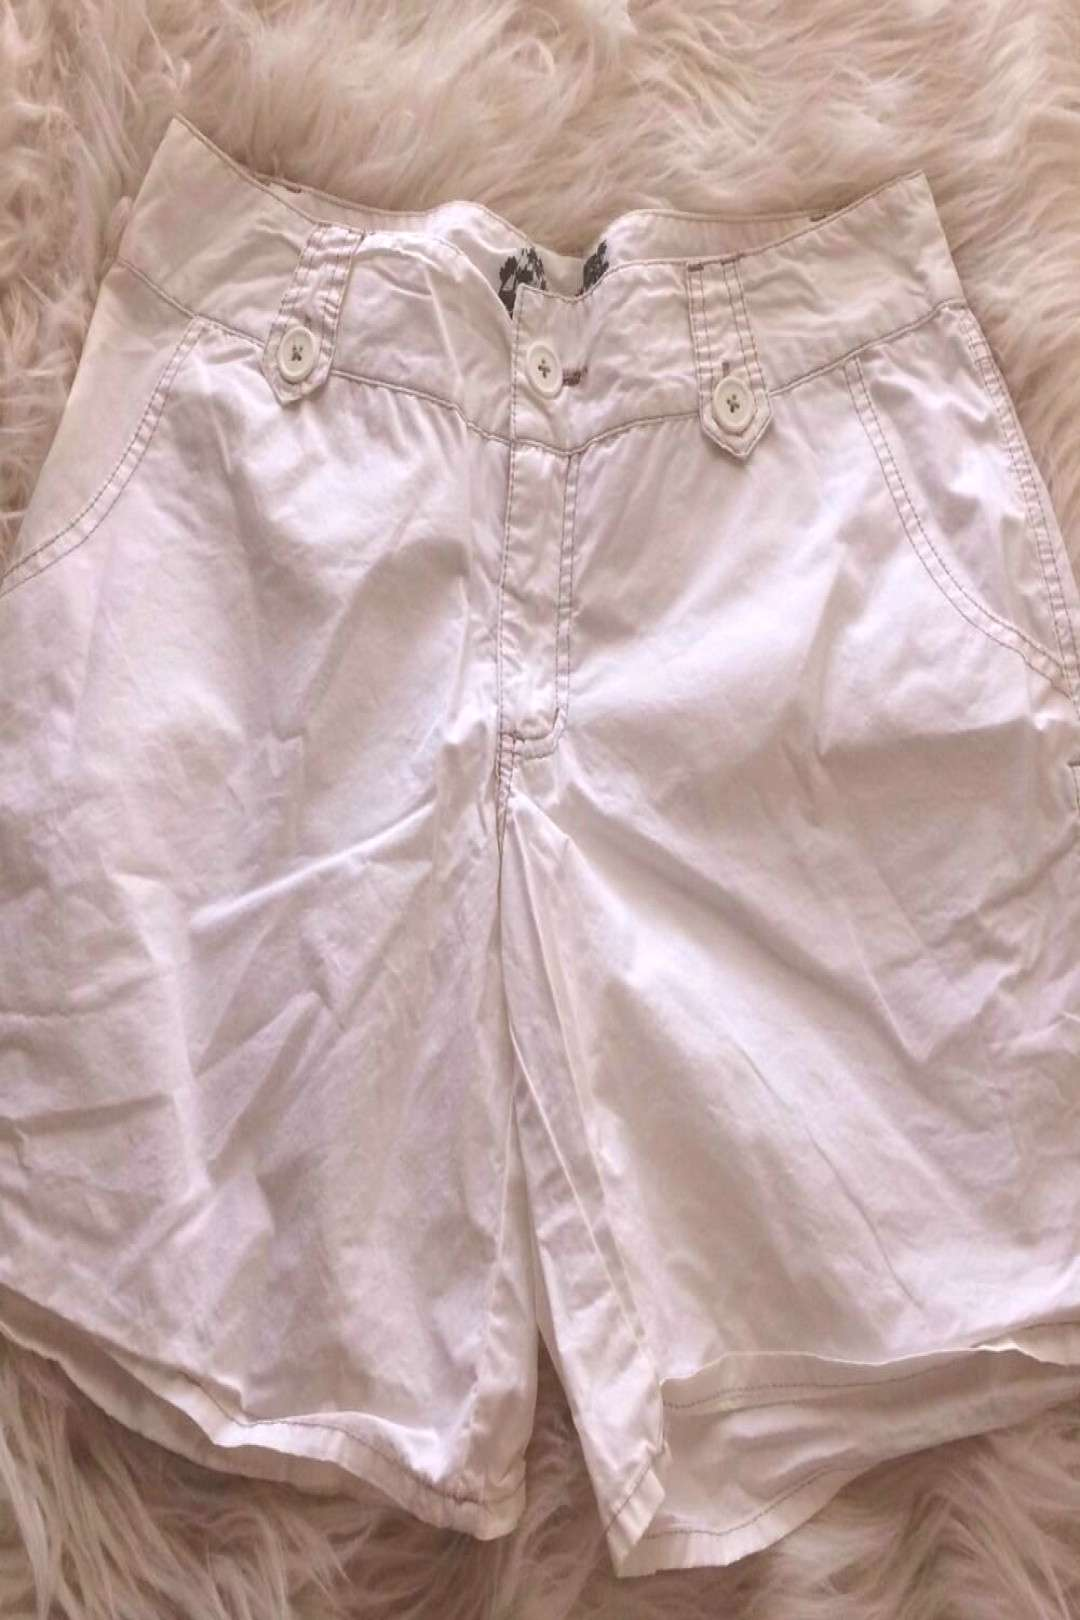 Mossimo womens 13 Shorts white flat front Walking Hiking pockets Cotton Casual